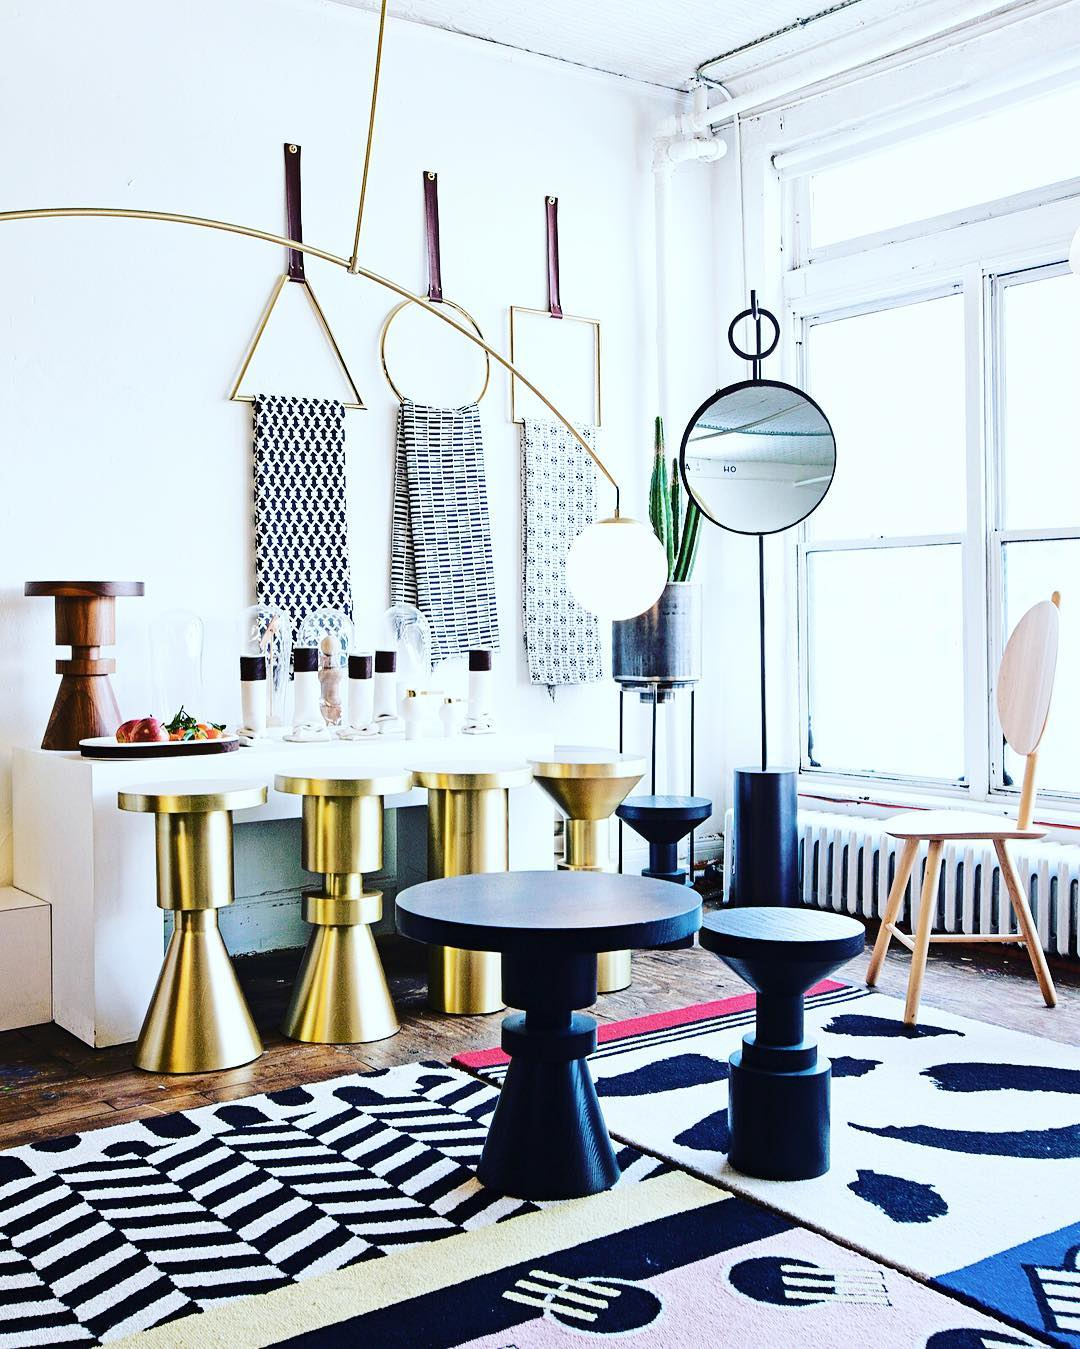 Bold geometric carpets, furnishings and stools